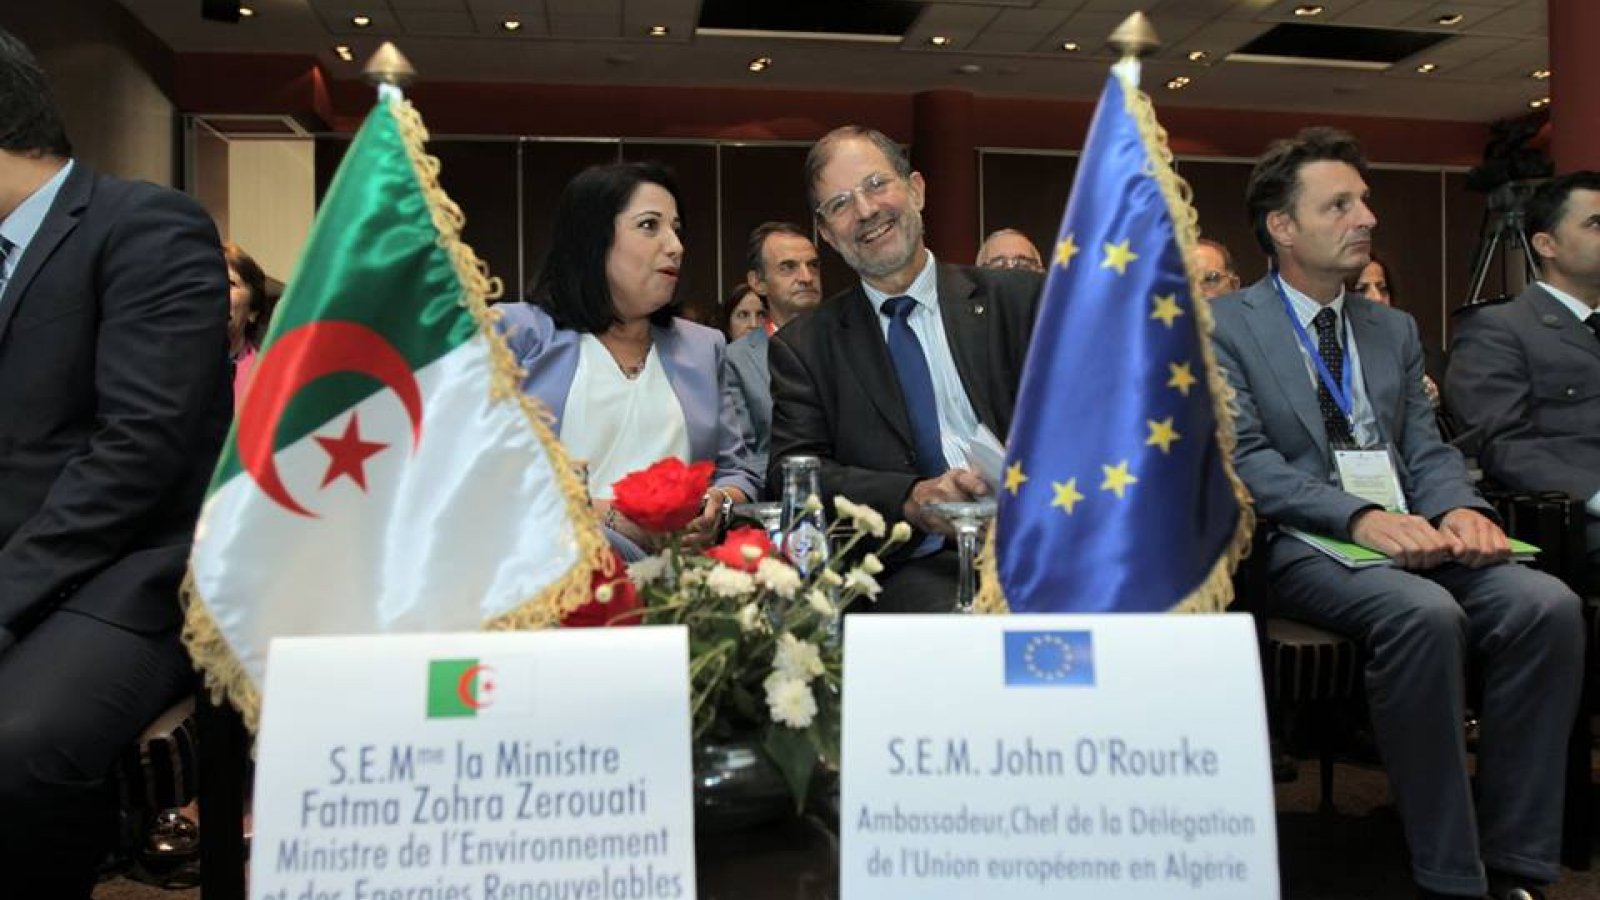 The EU helps Algeria adapt to climate change